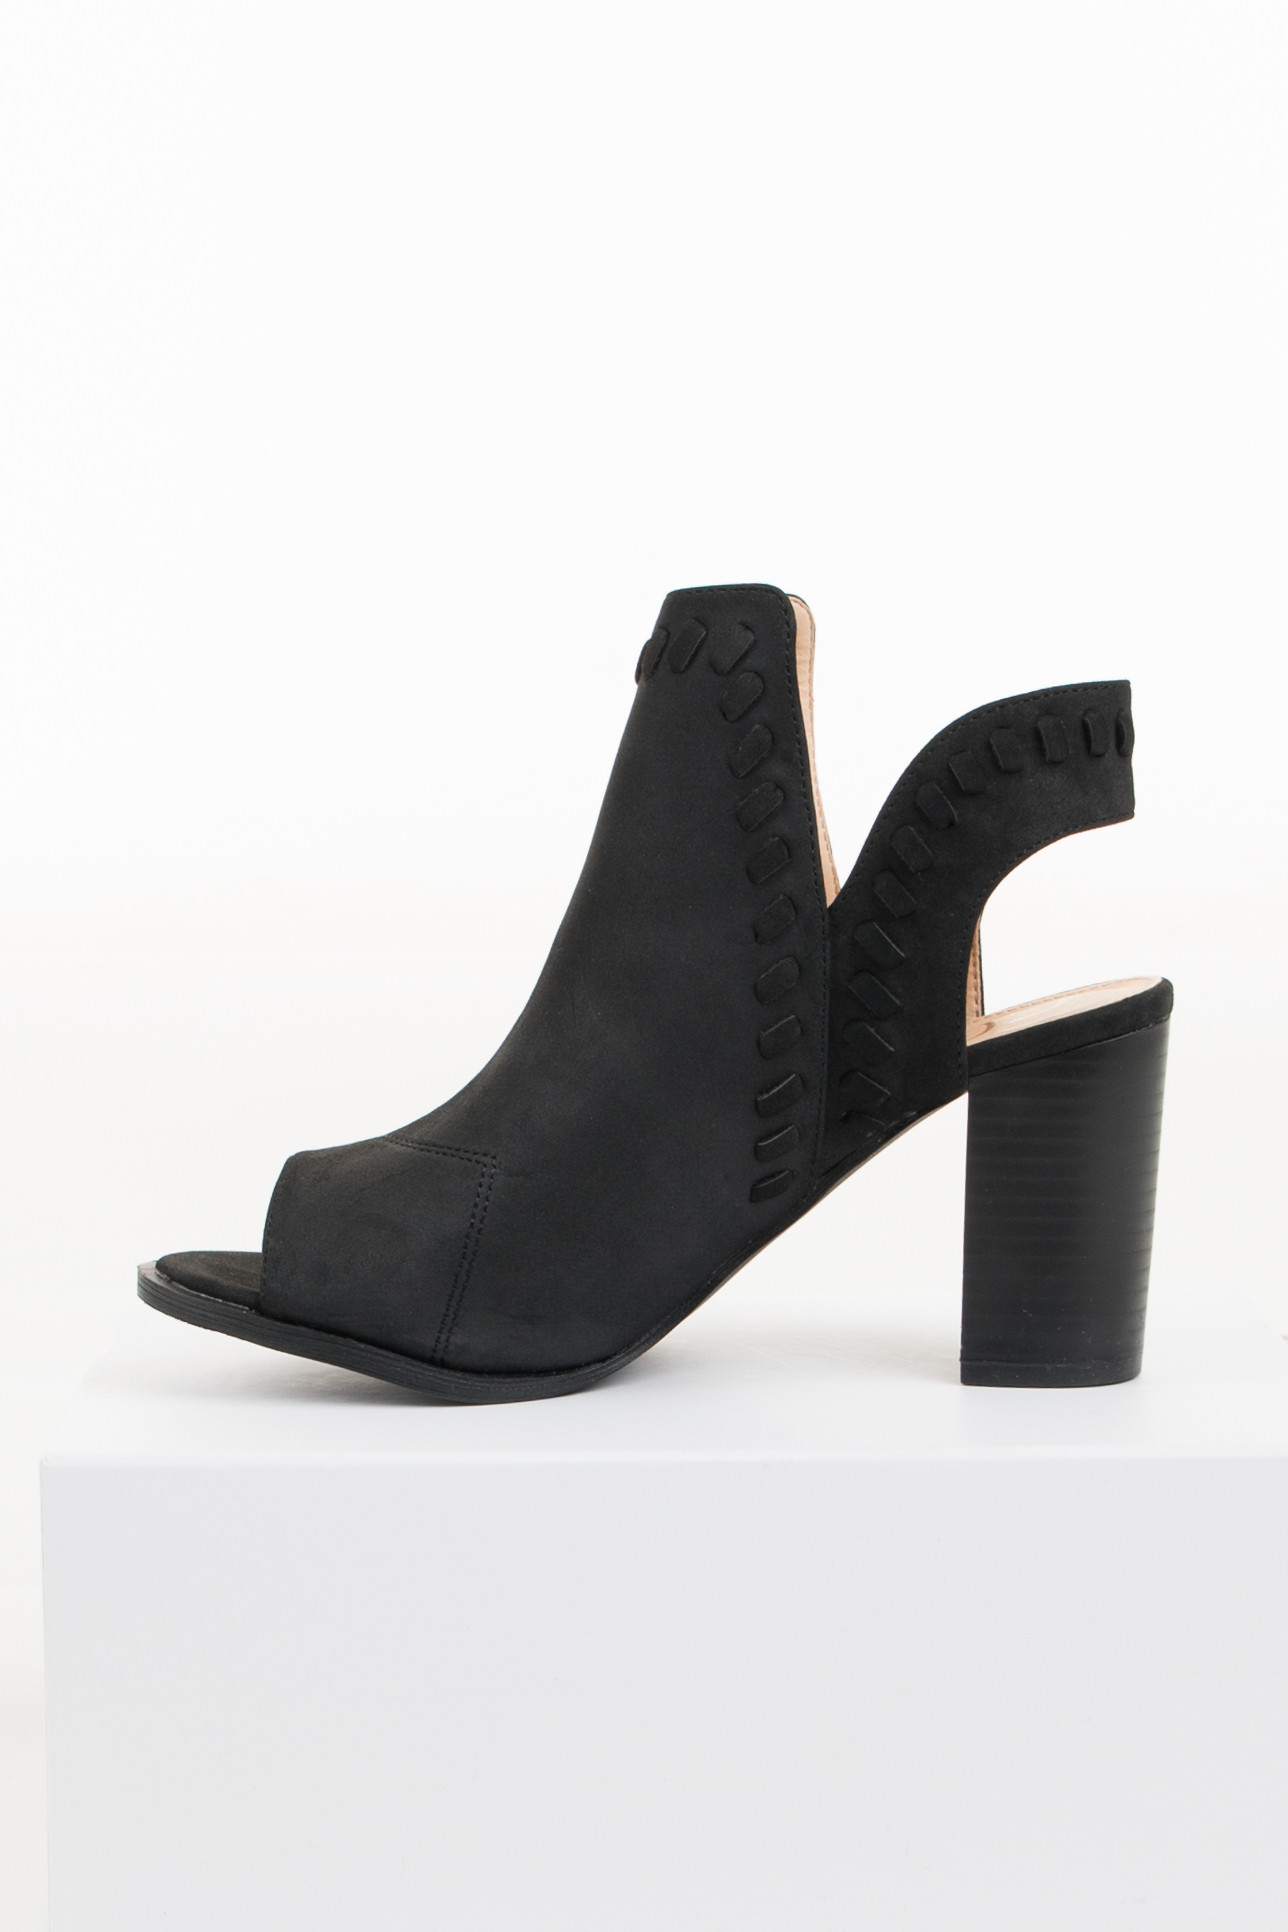 Black Open Toed Heels with Heel Cutout and Braided Details detail